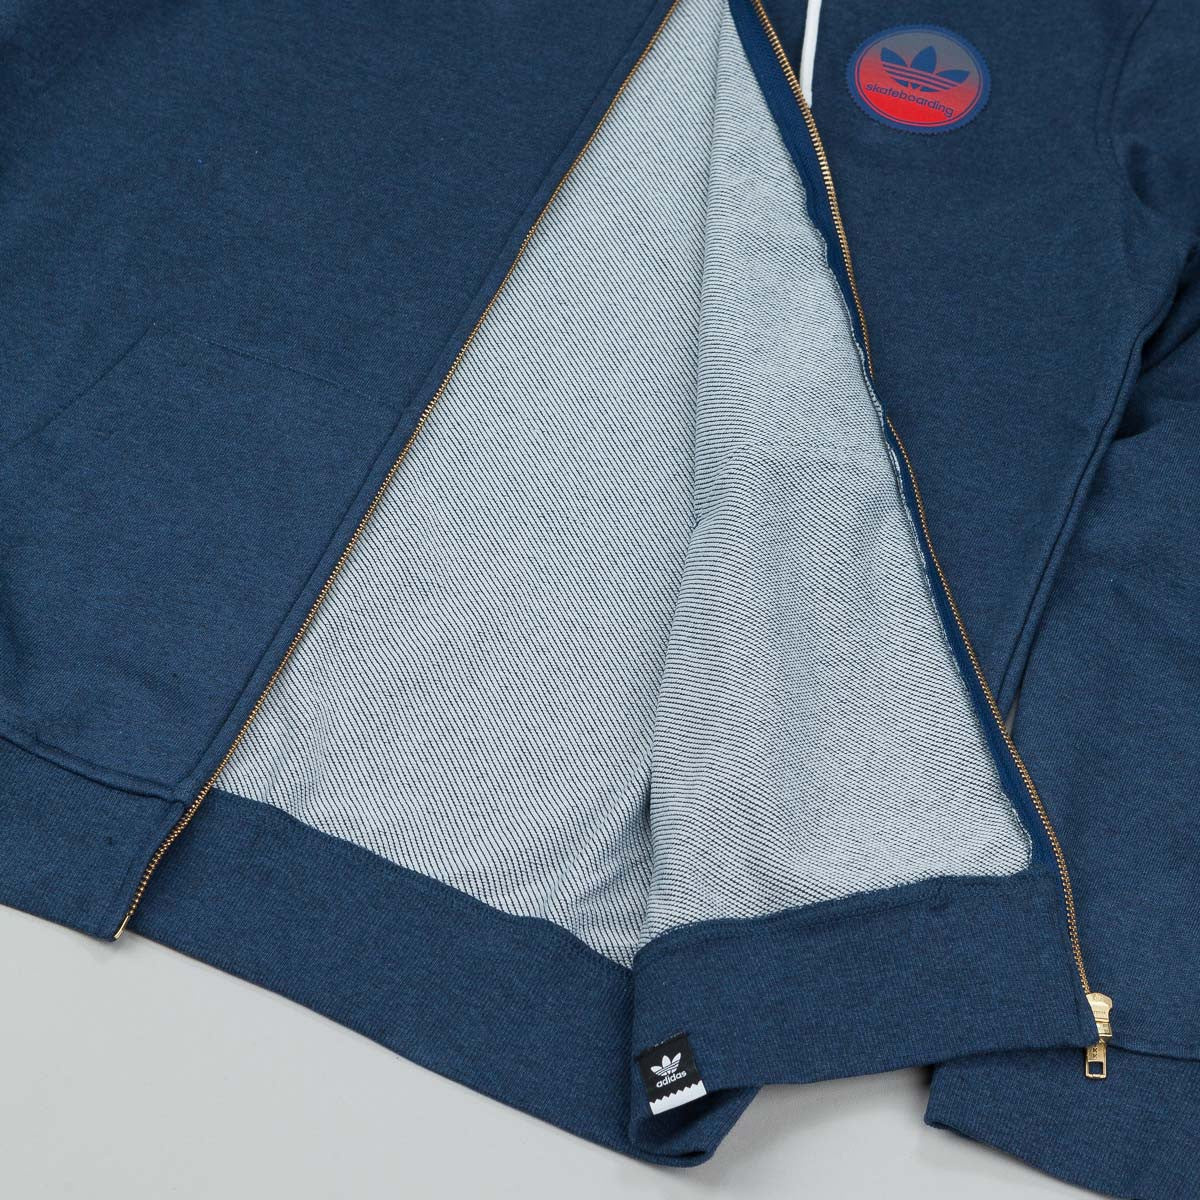 Adidas ADV Team Zip Hooded Sweatshirt - Oxford Blue